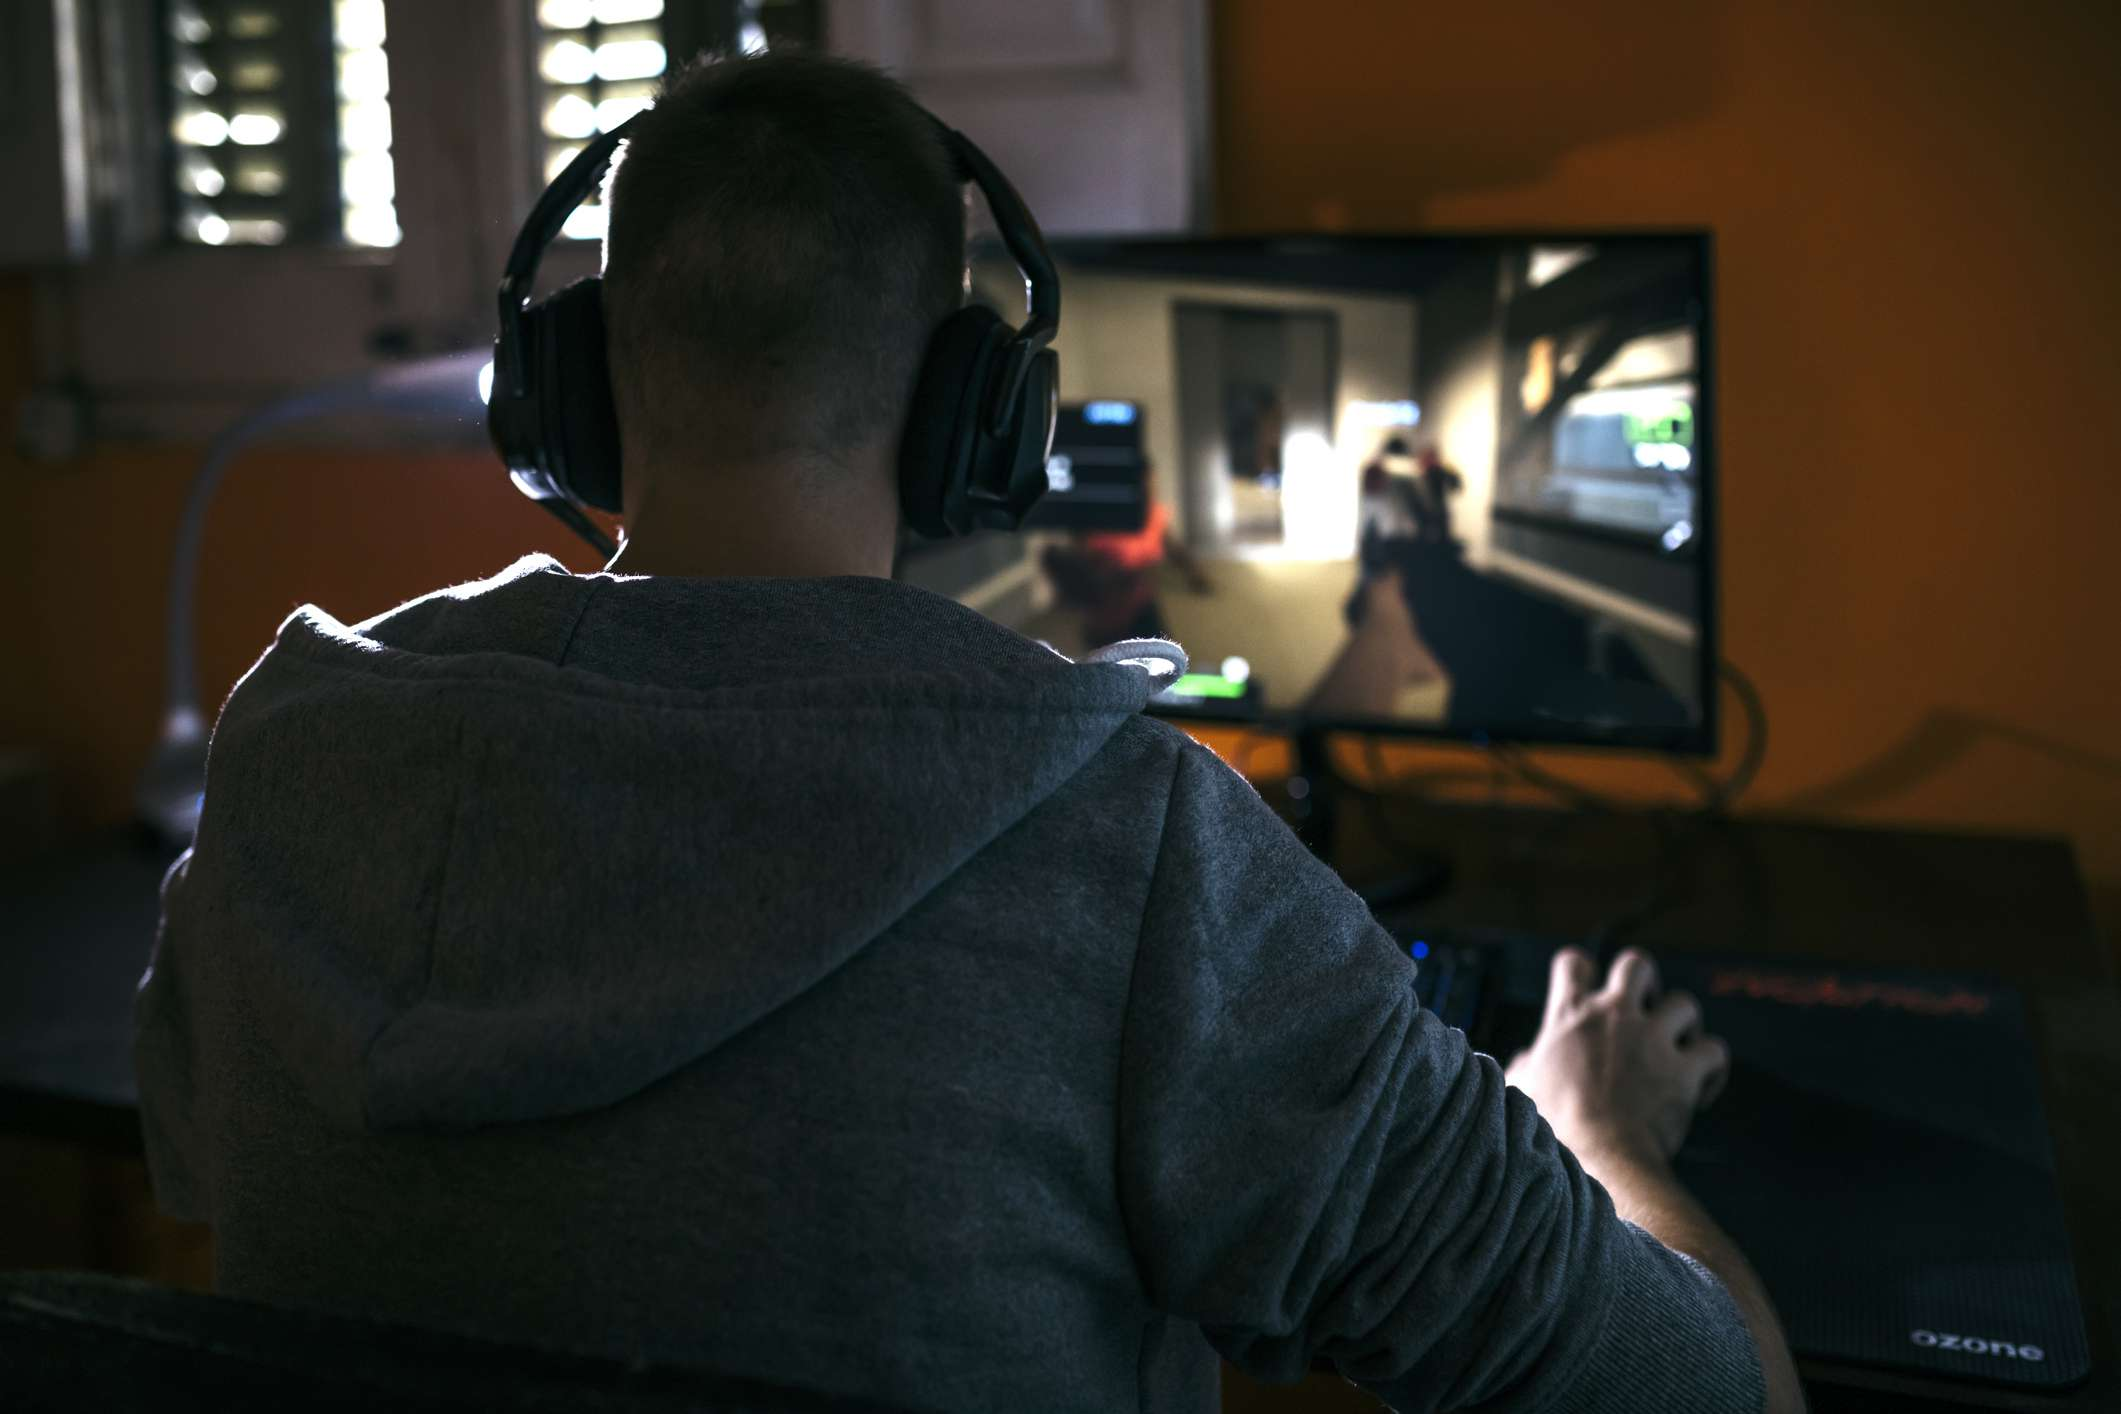 The view from behind someone playing video games on a computer monitor while wearing headphones.